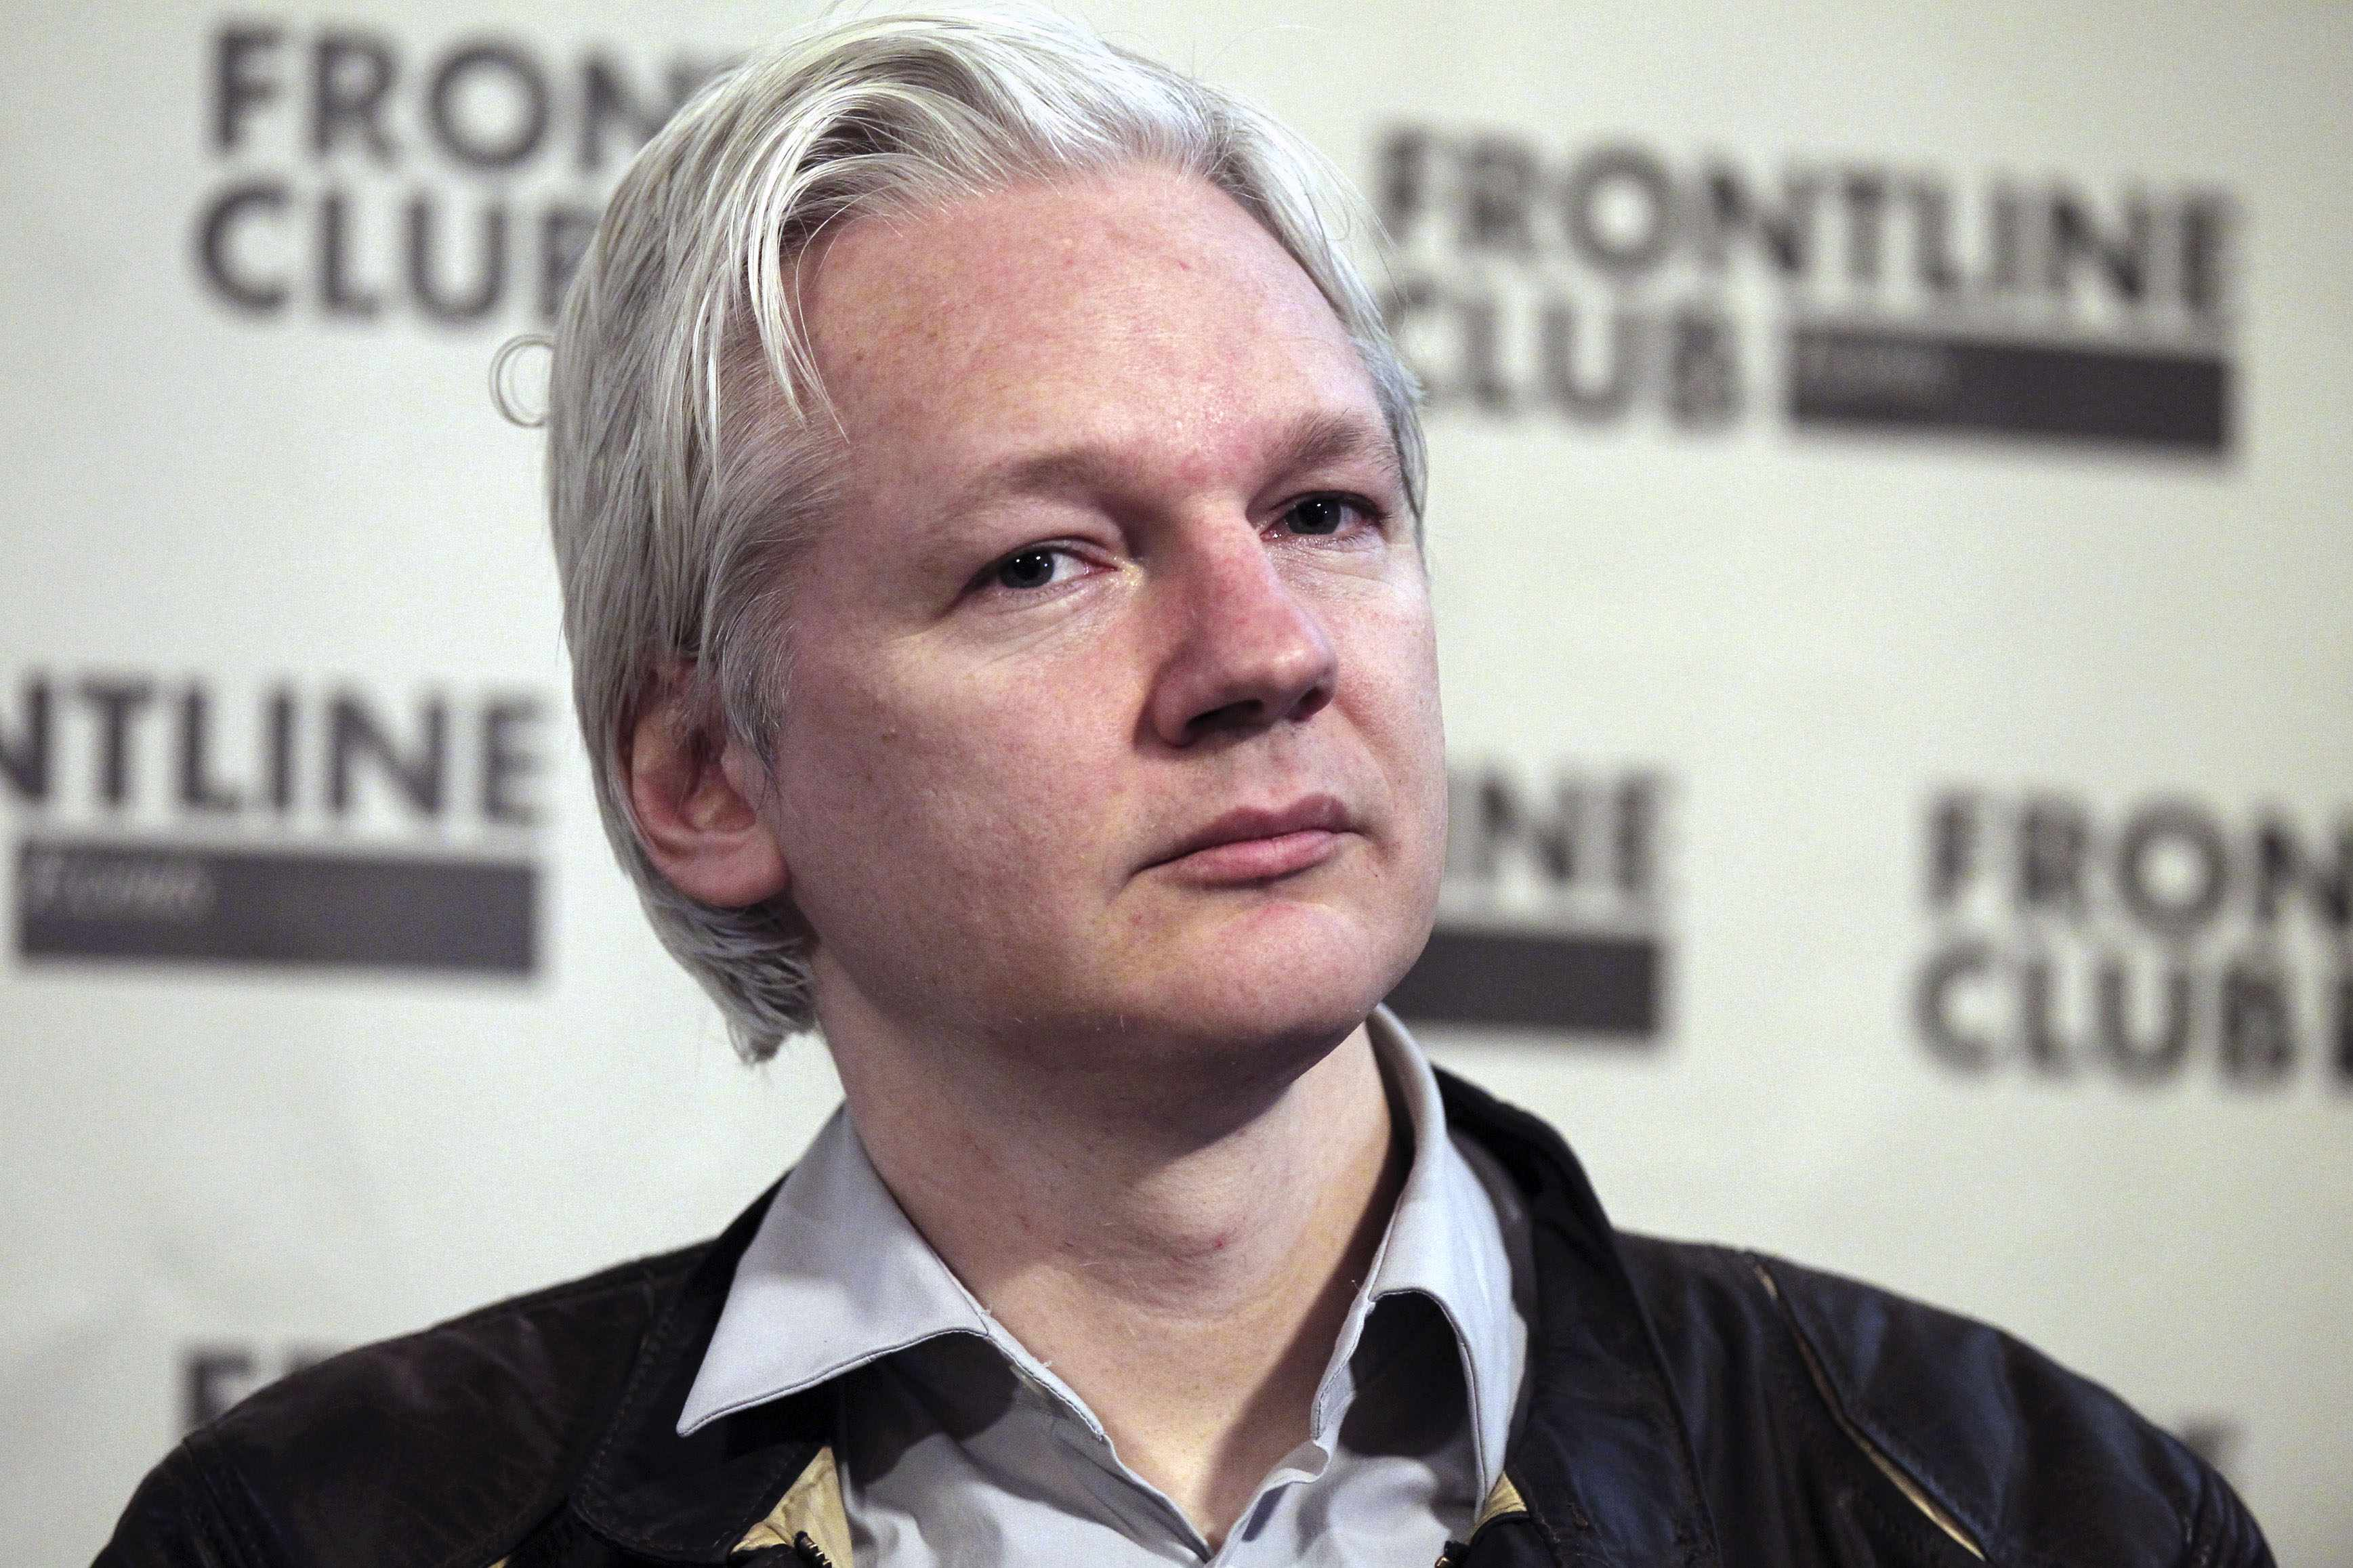 File photo of WikiLeaks founder Julian Assange speaking at a news conference in London